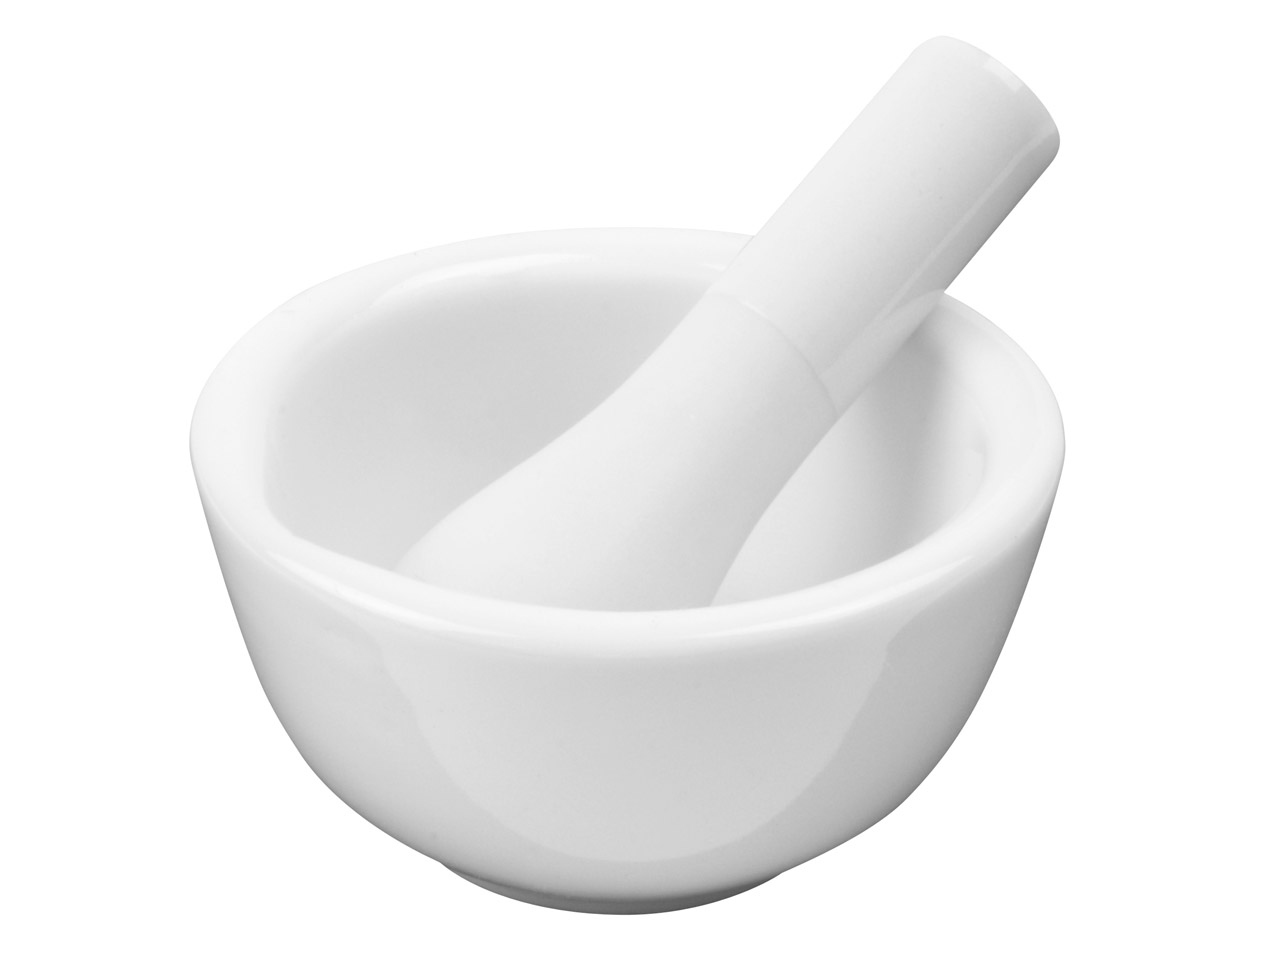 Pestle And Mortar Acid Proof       Porcelain 60mm Diameter